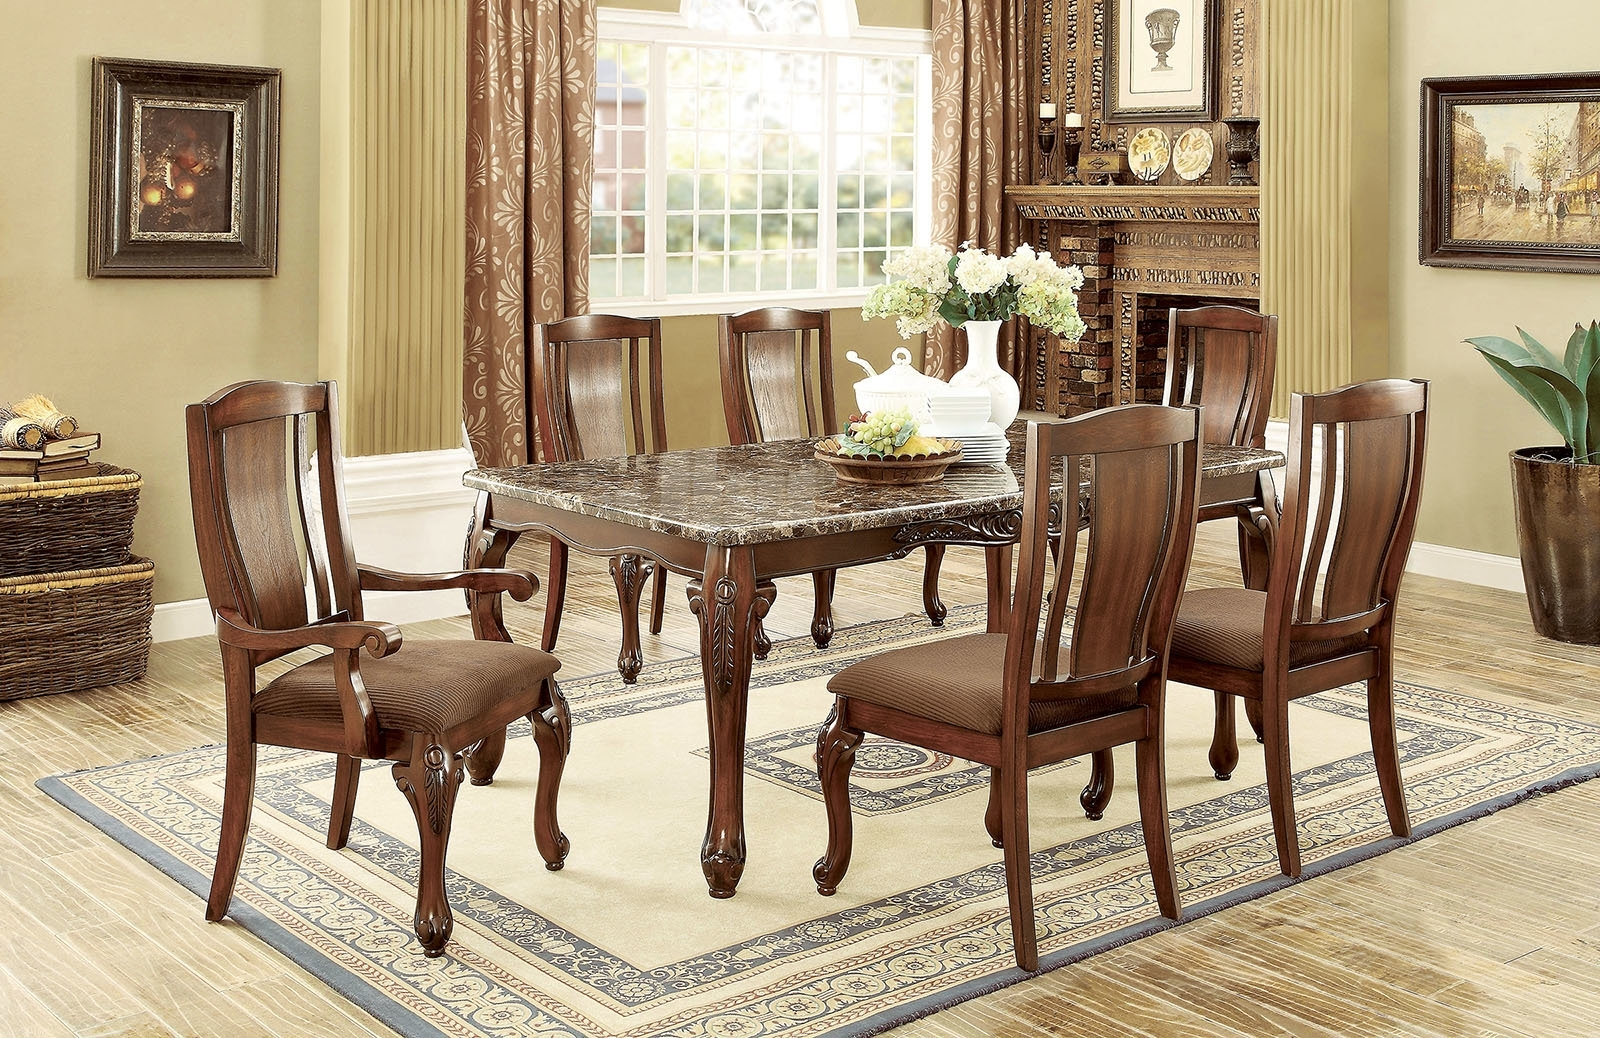 Wayfair Regarding Well Known Candice Ii 7 Piece Extension Rectangle Dining Sets (View 20 of 25)